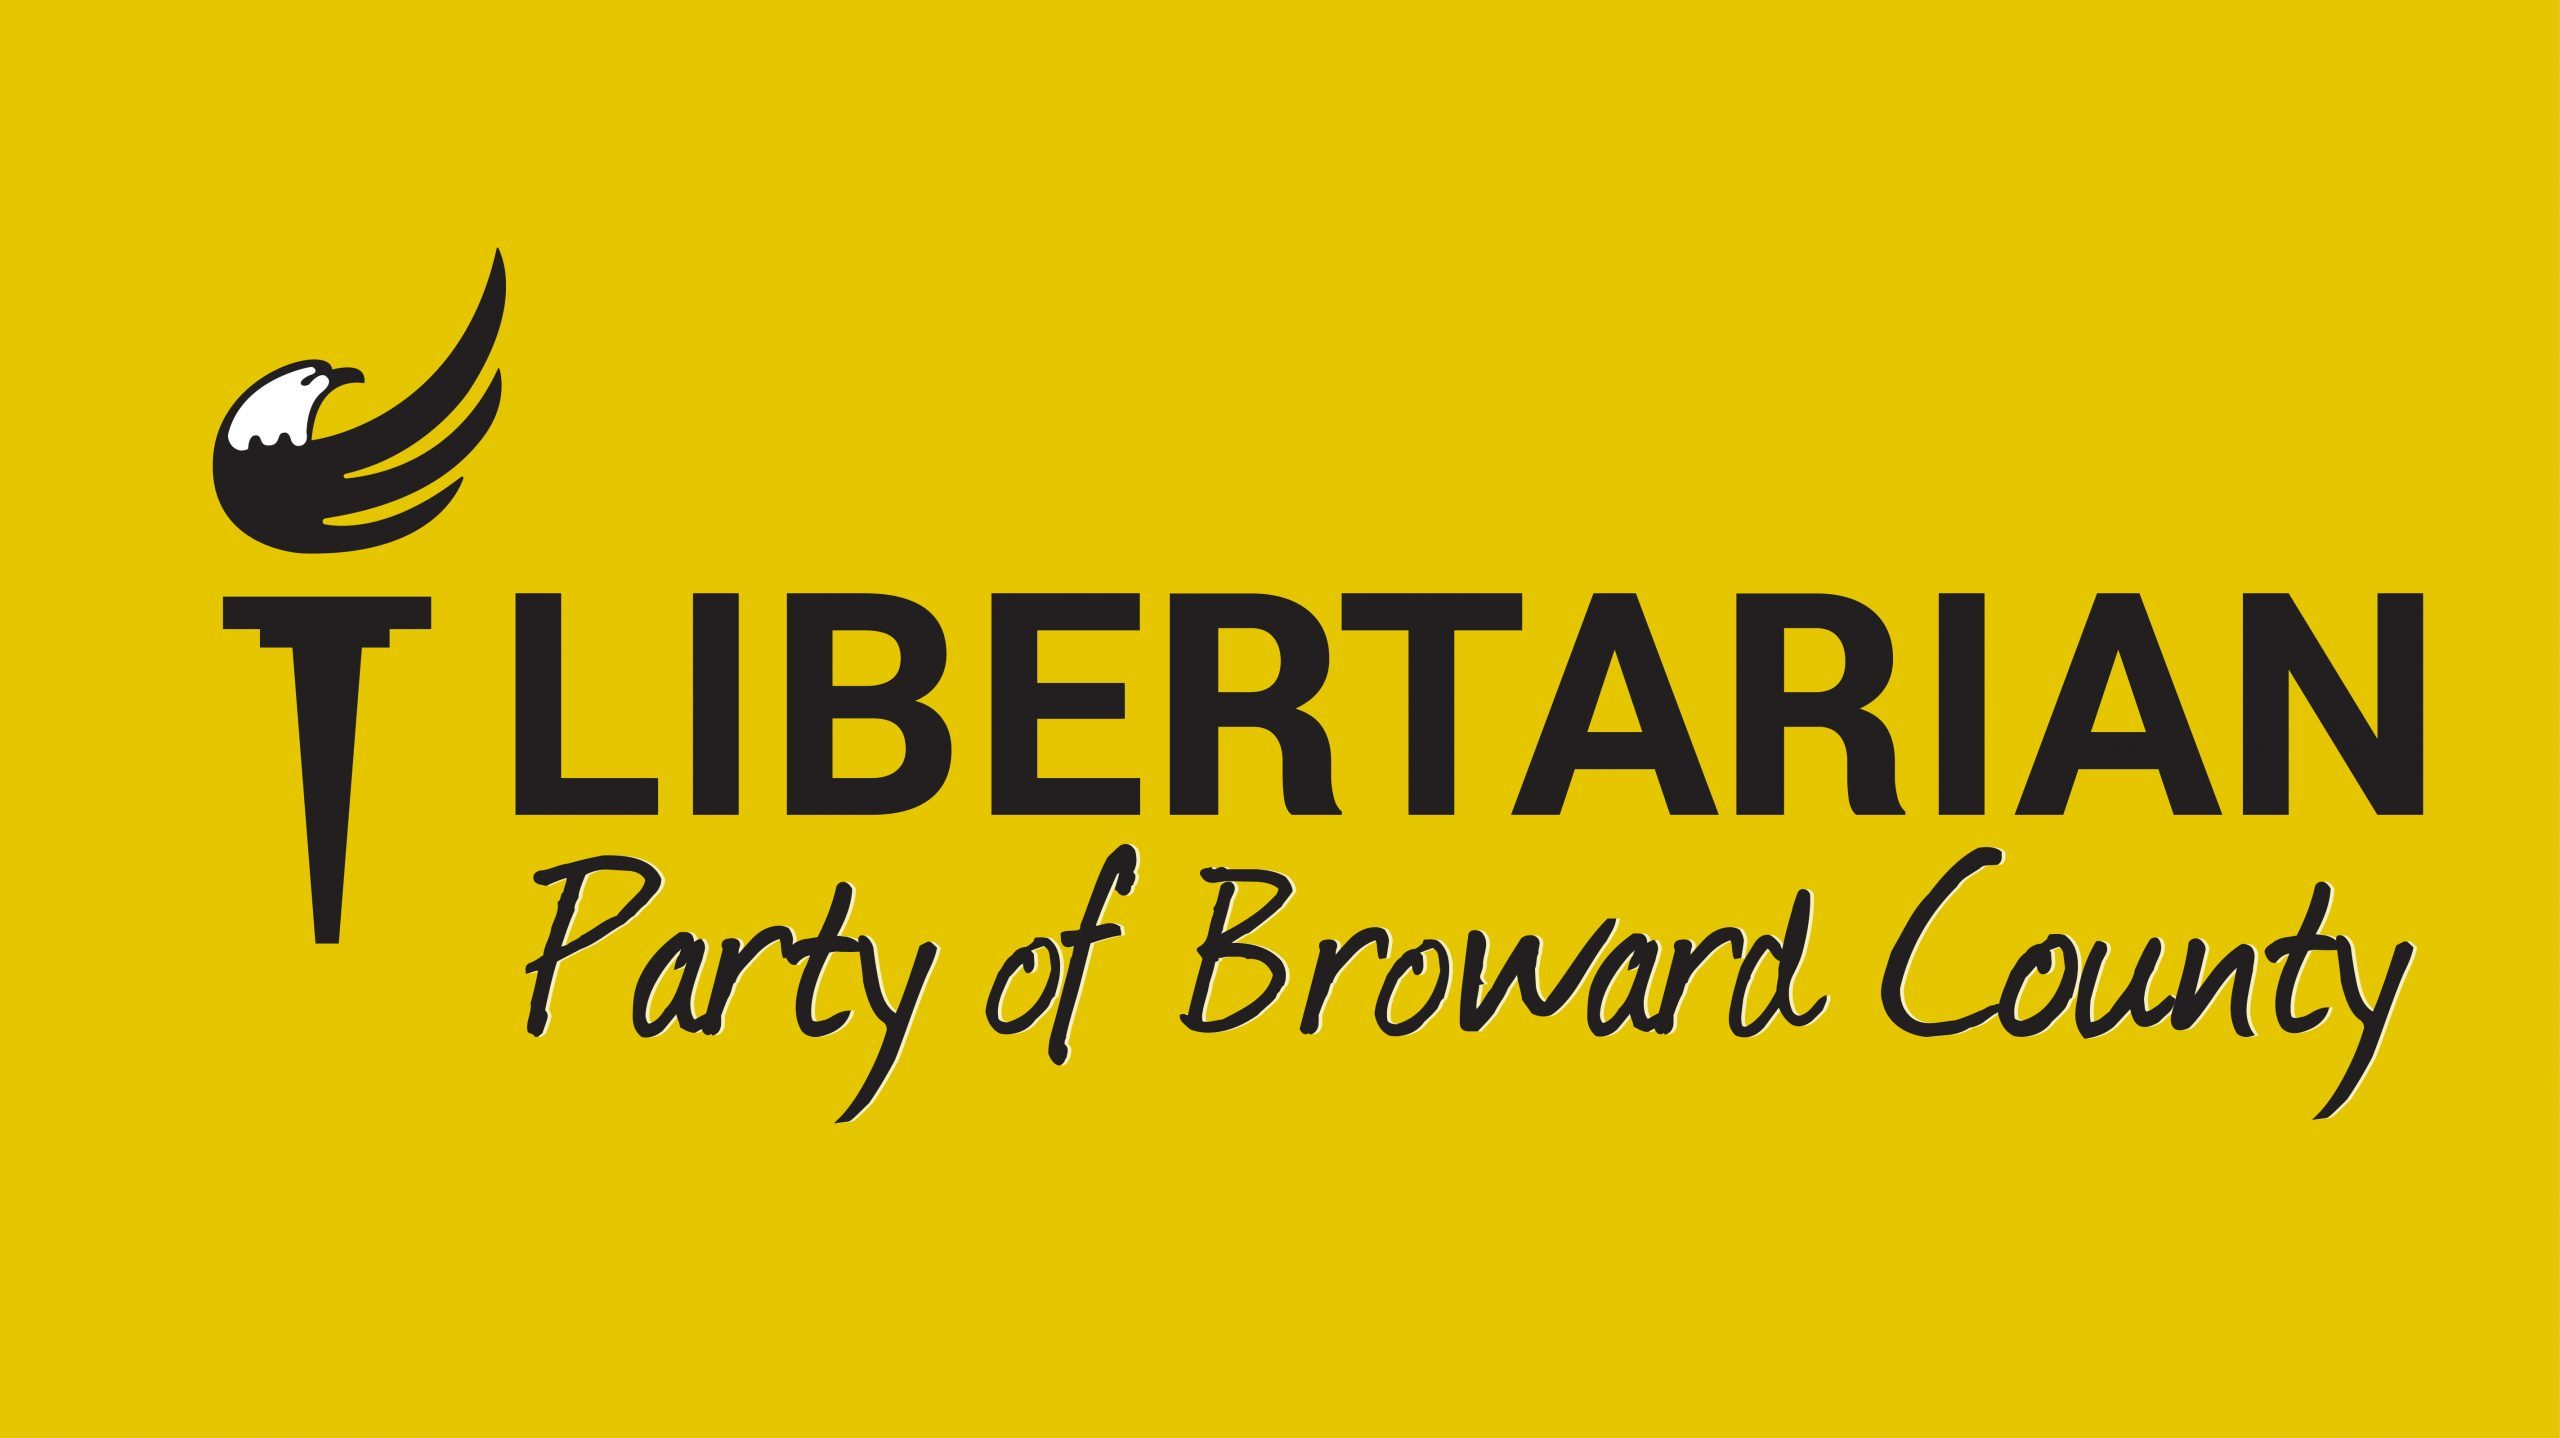 Libertarian Party of Broward County